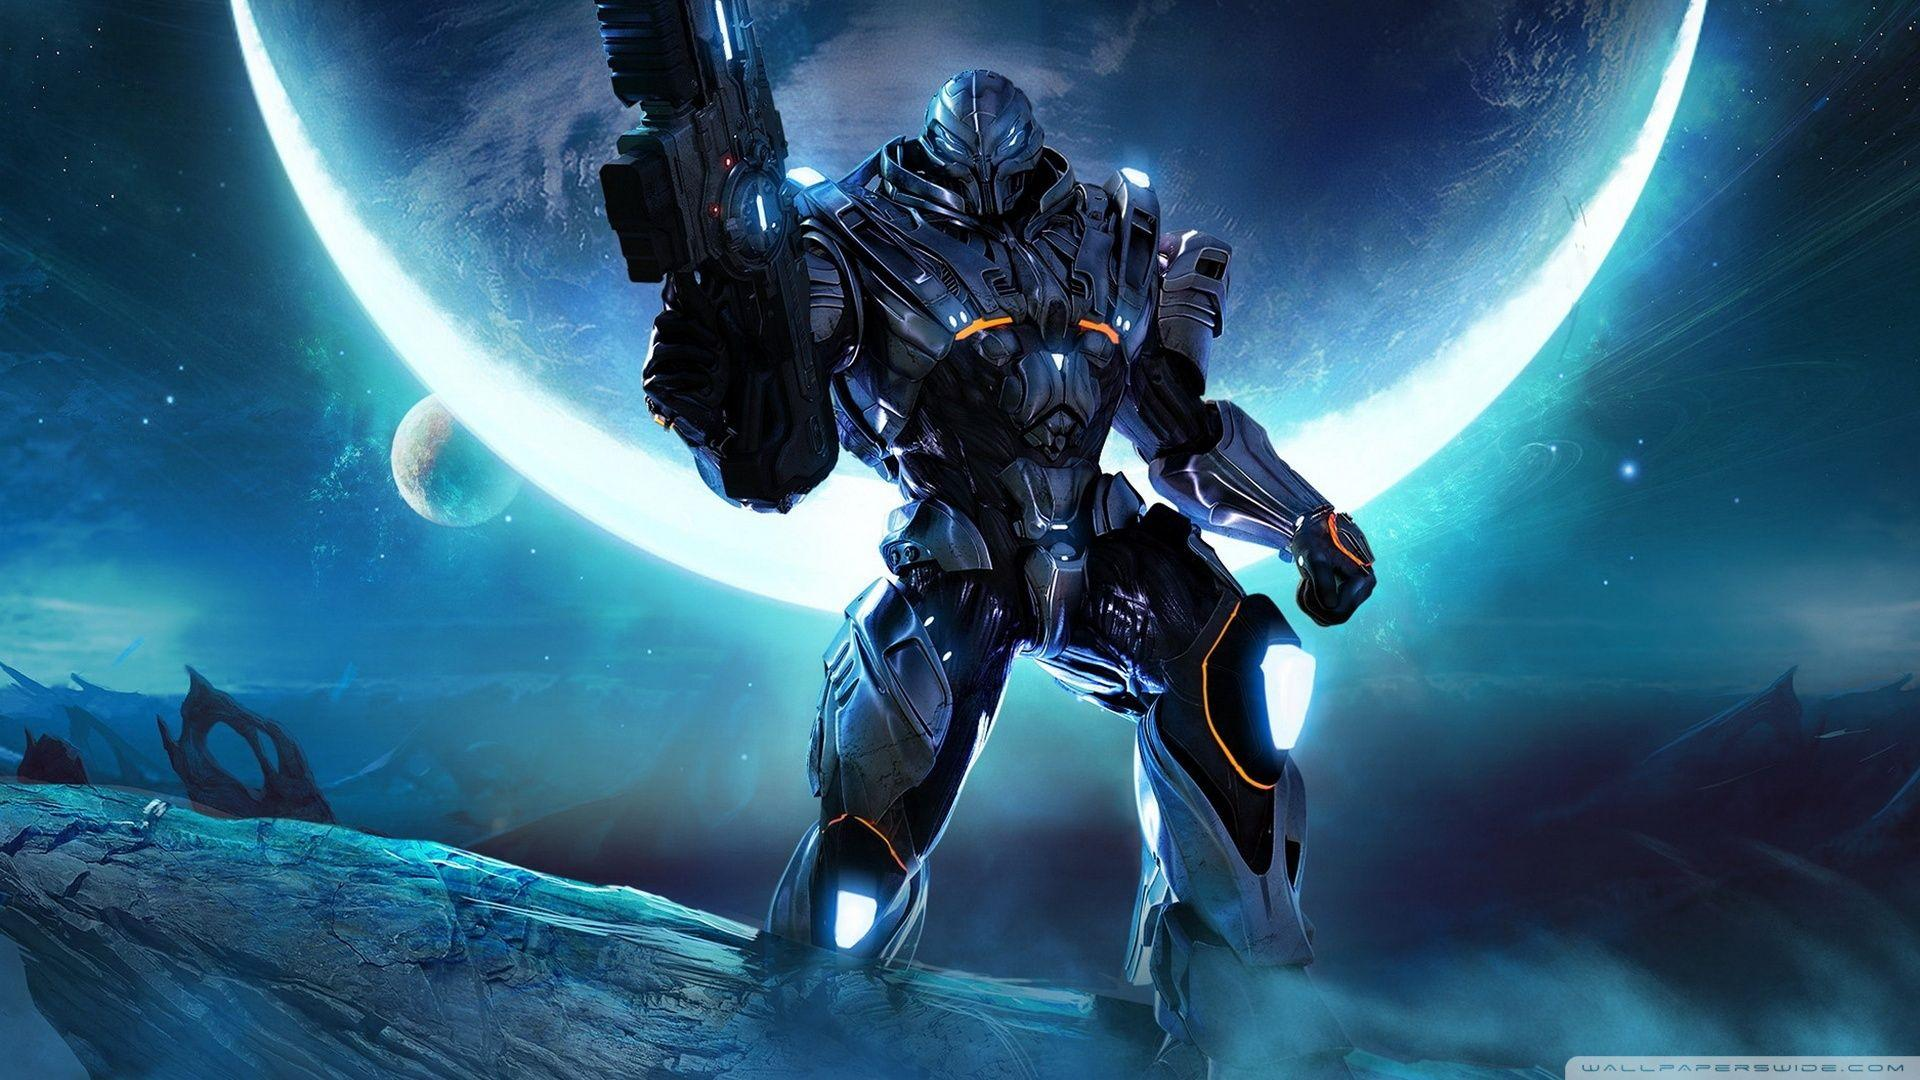 Wallpapers Halo Wallpaper Cave